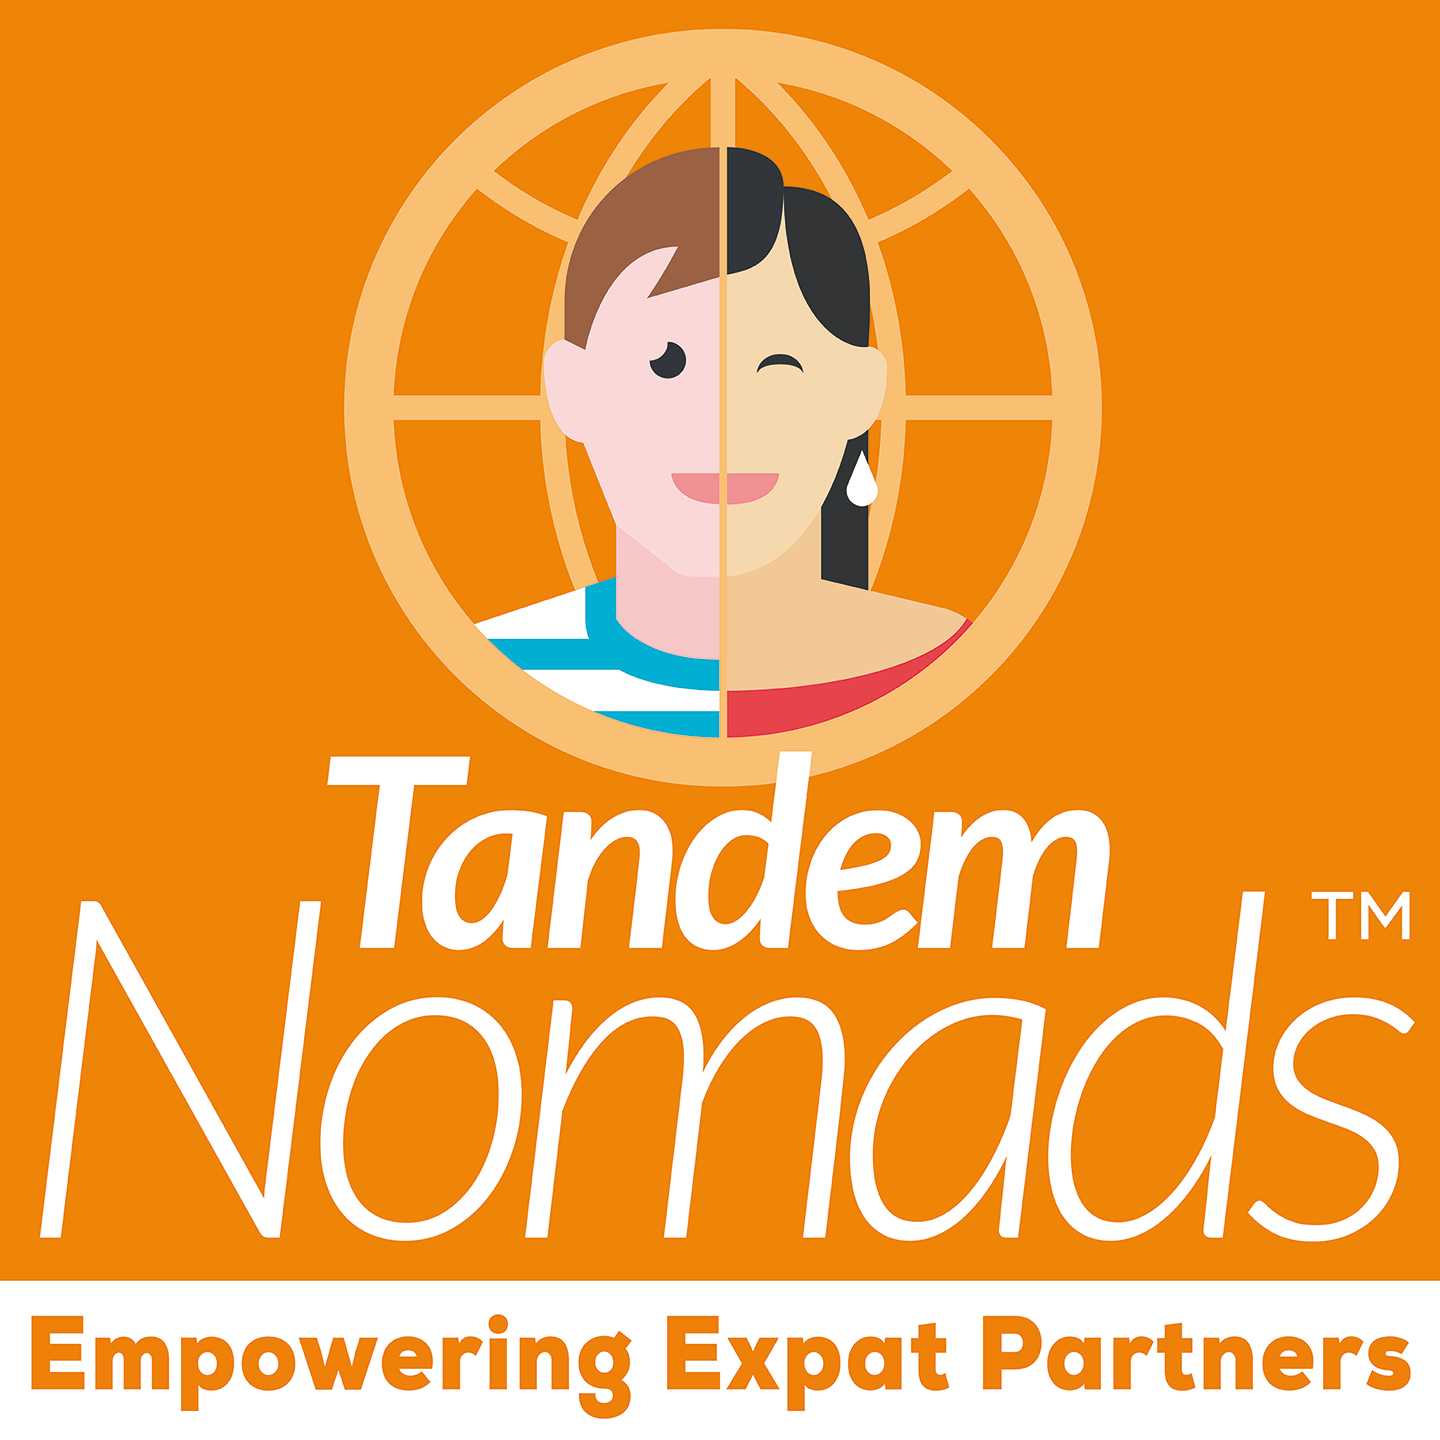 Tandem Nomads - Empowering Expat Partners : tips and inspiration to build a portable business and thrive abroad.